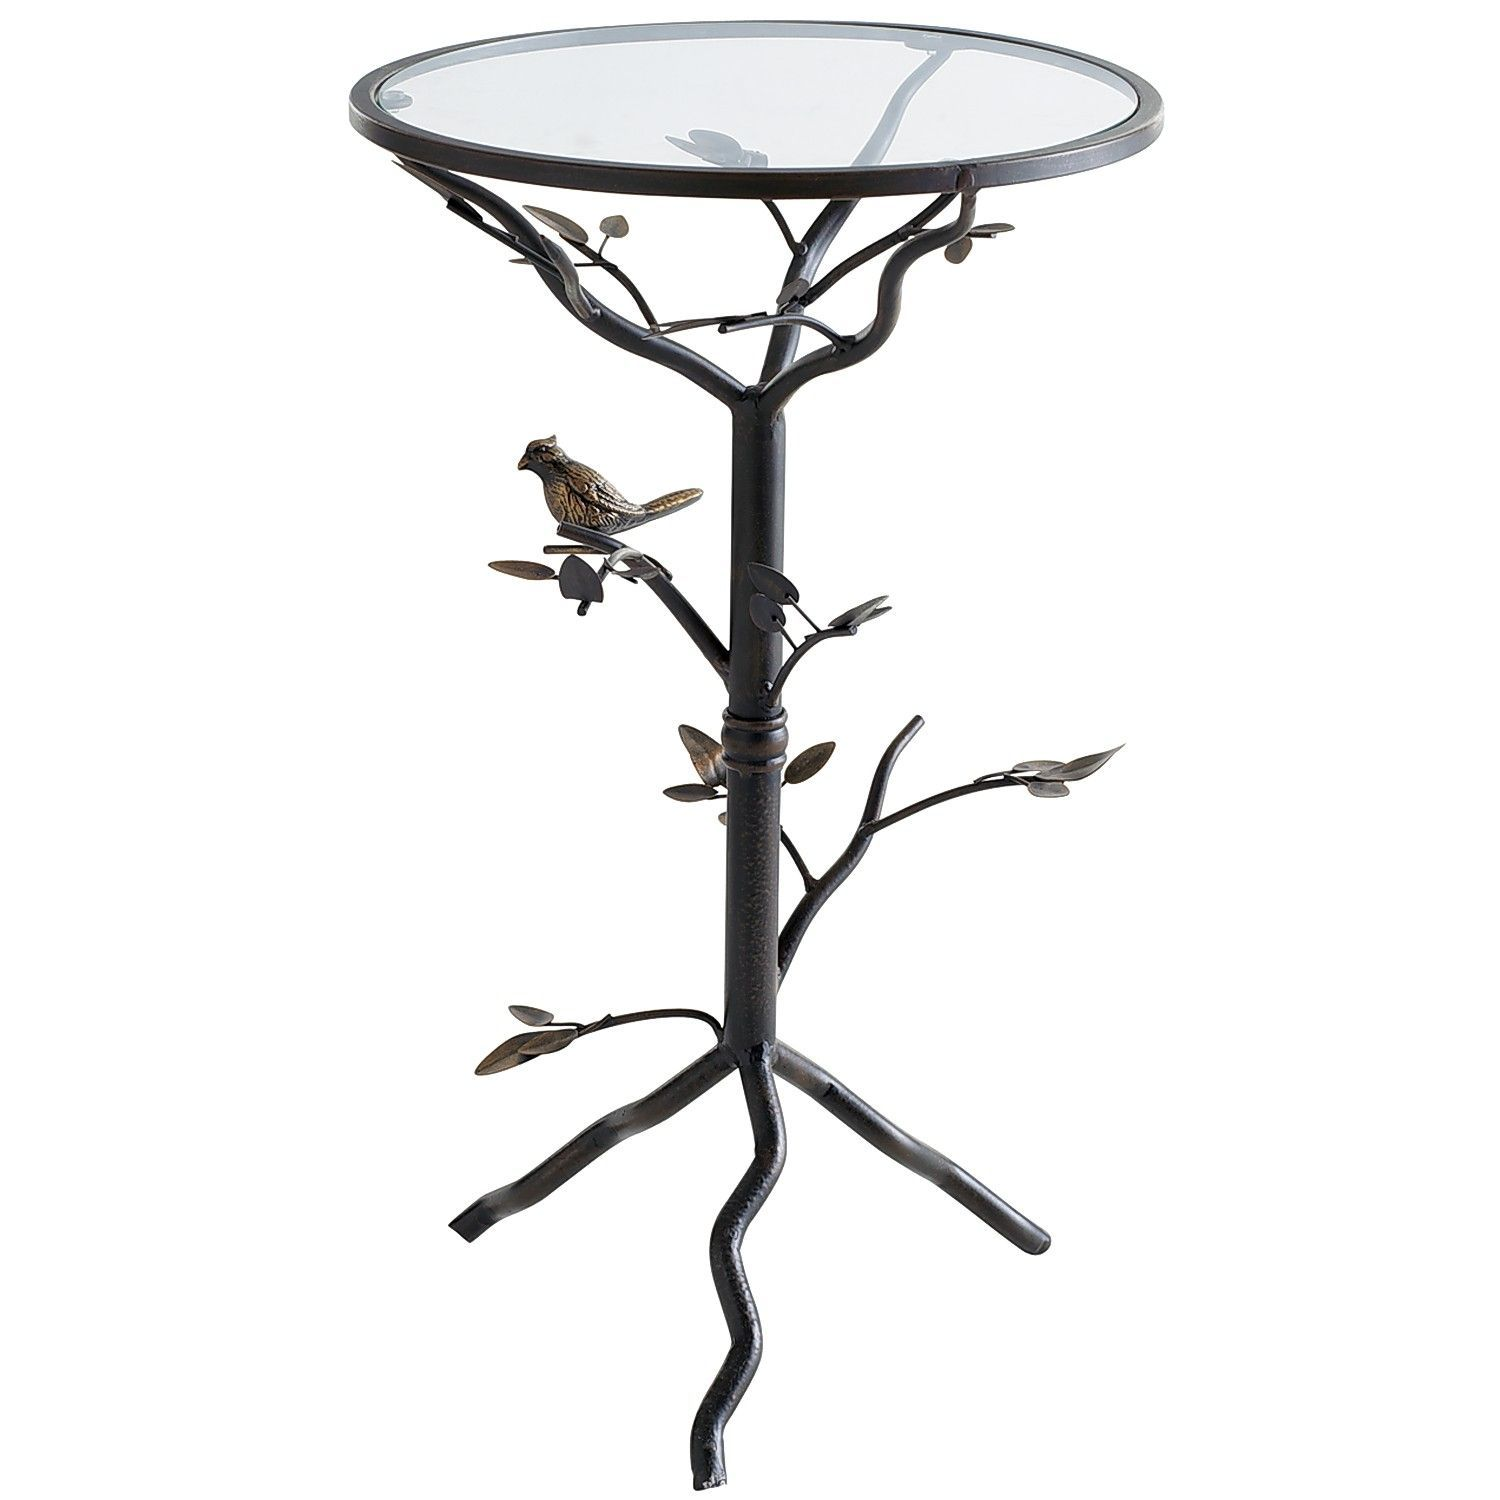 perched bird accent table appoint penthouses kenzie room ideas and porch bathroom stand target mission coffee campaign side nautical bar lights tiffany lamps foyer console mirrors